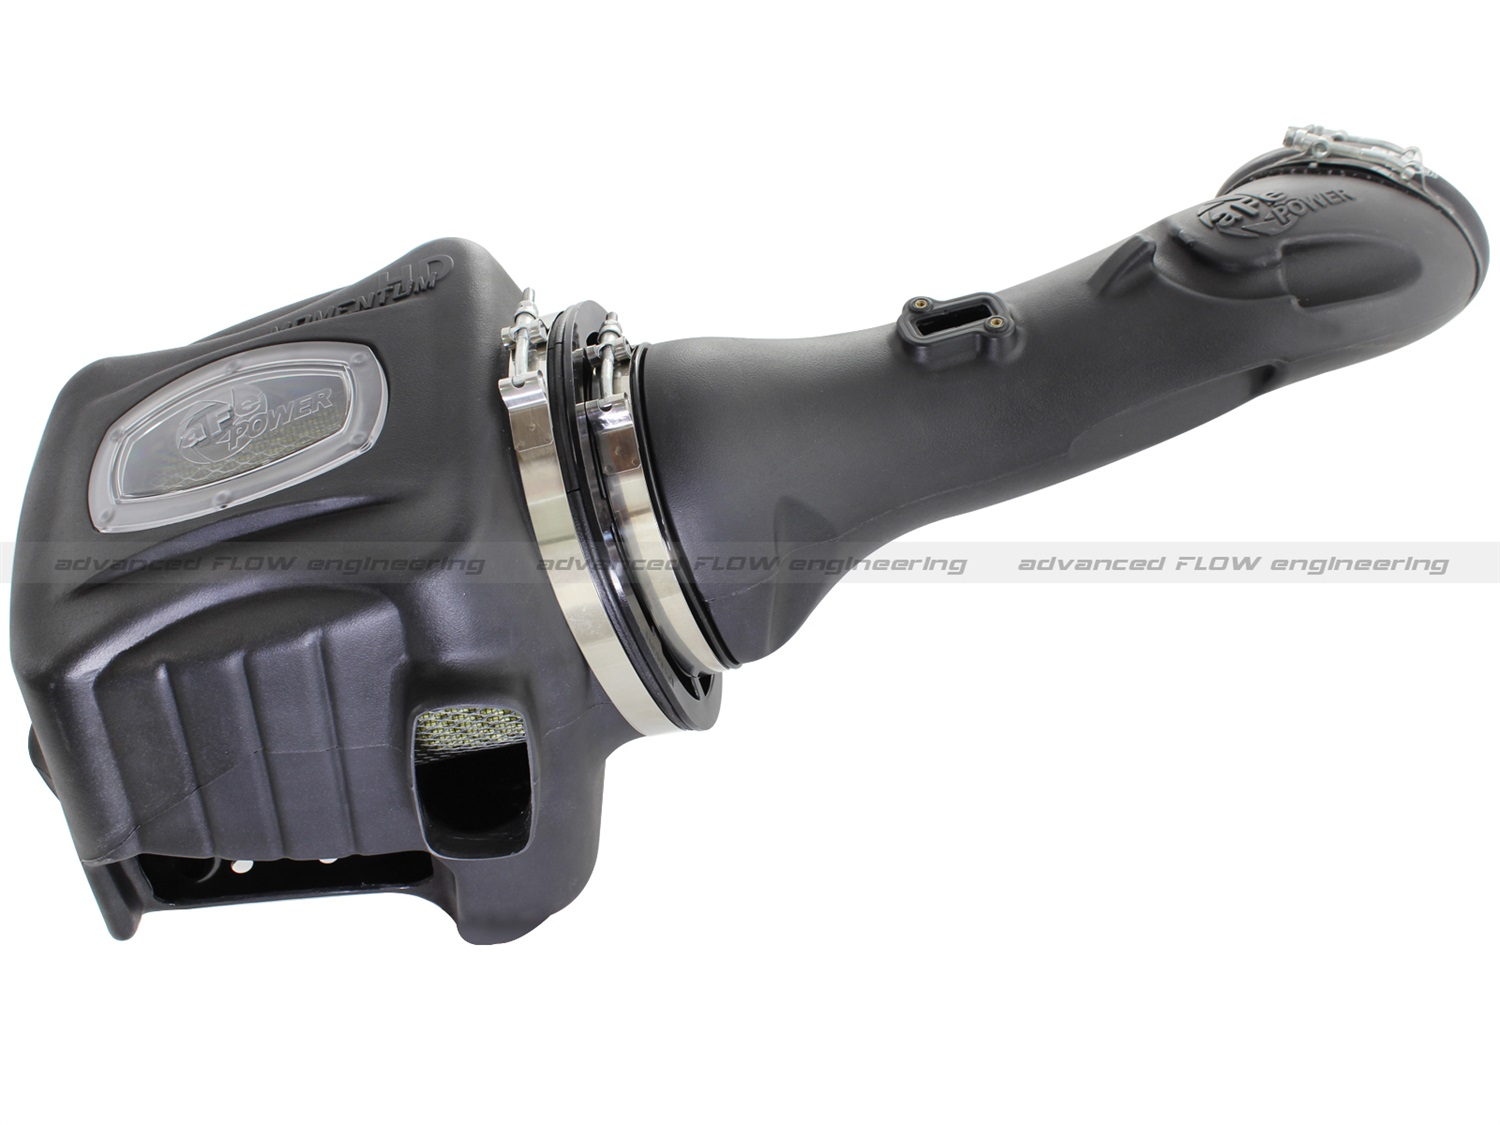 aFe Power 75-73005 Momentum HD PRO GUARD 7 Stage-2 Si Intake System 75-73005